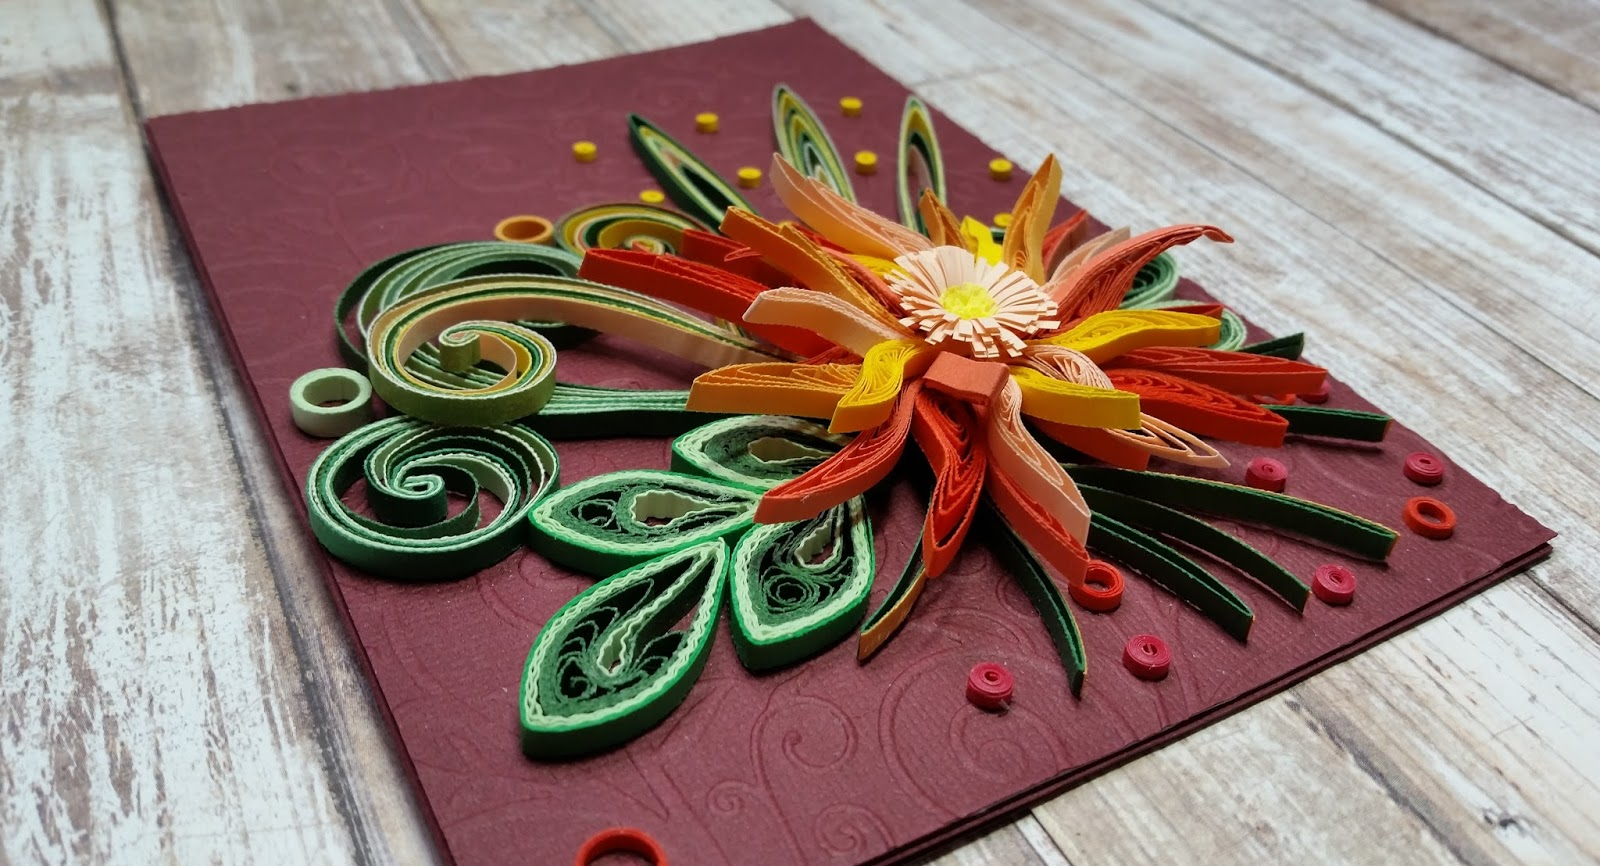 Nv craft designs quilled flowerall occasion cardorange quilled quilled flowerall occasion cardorange quilled cardchrysanthemum flower quilled m4hsunfo